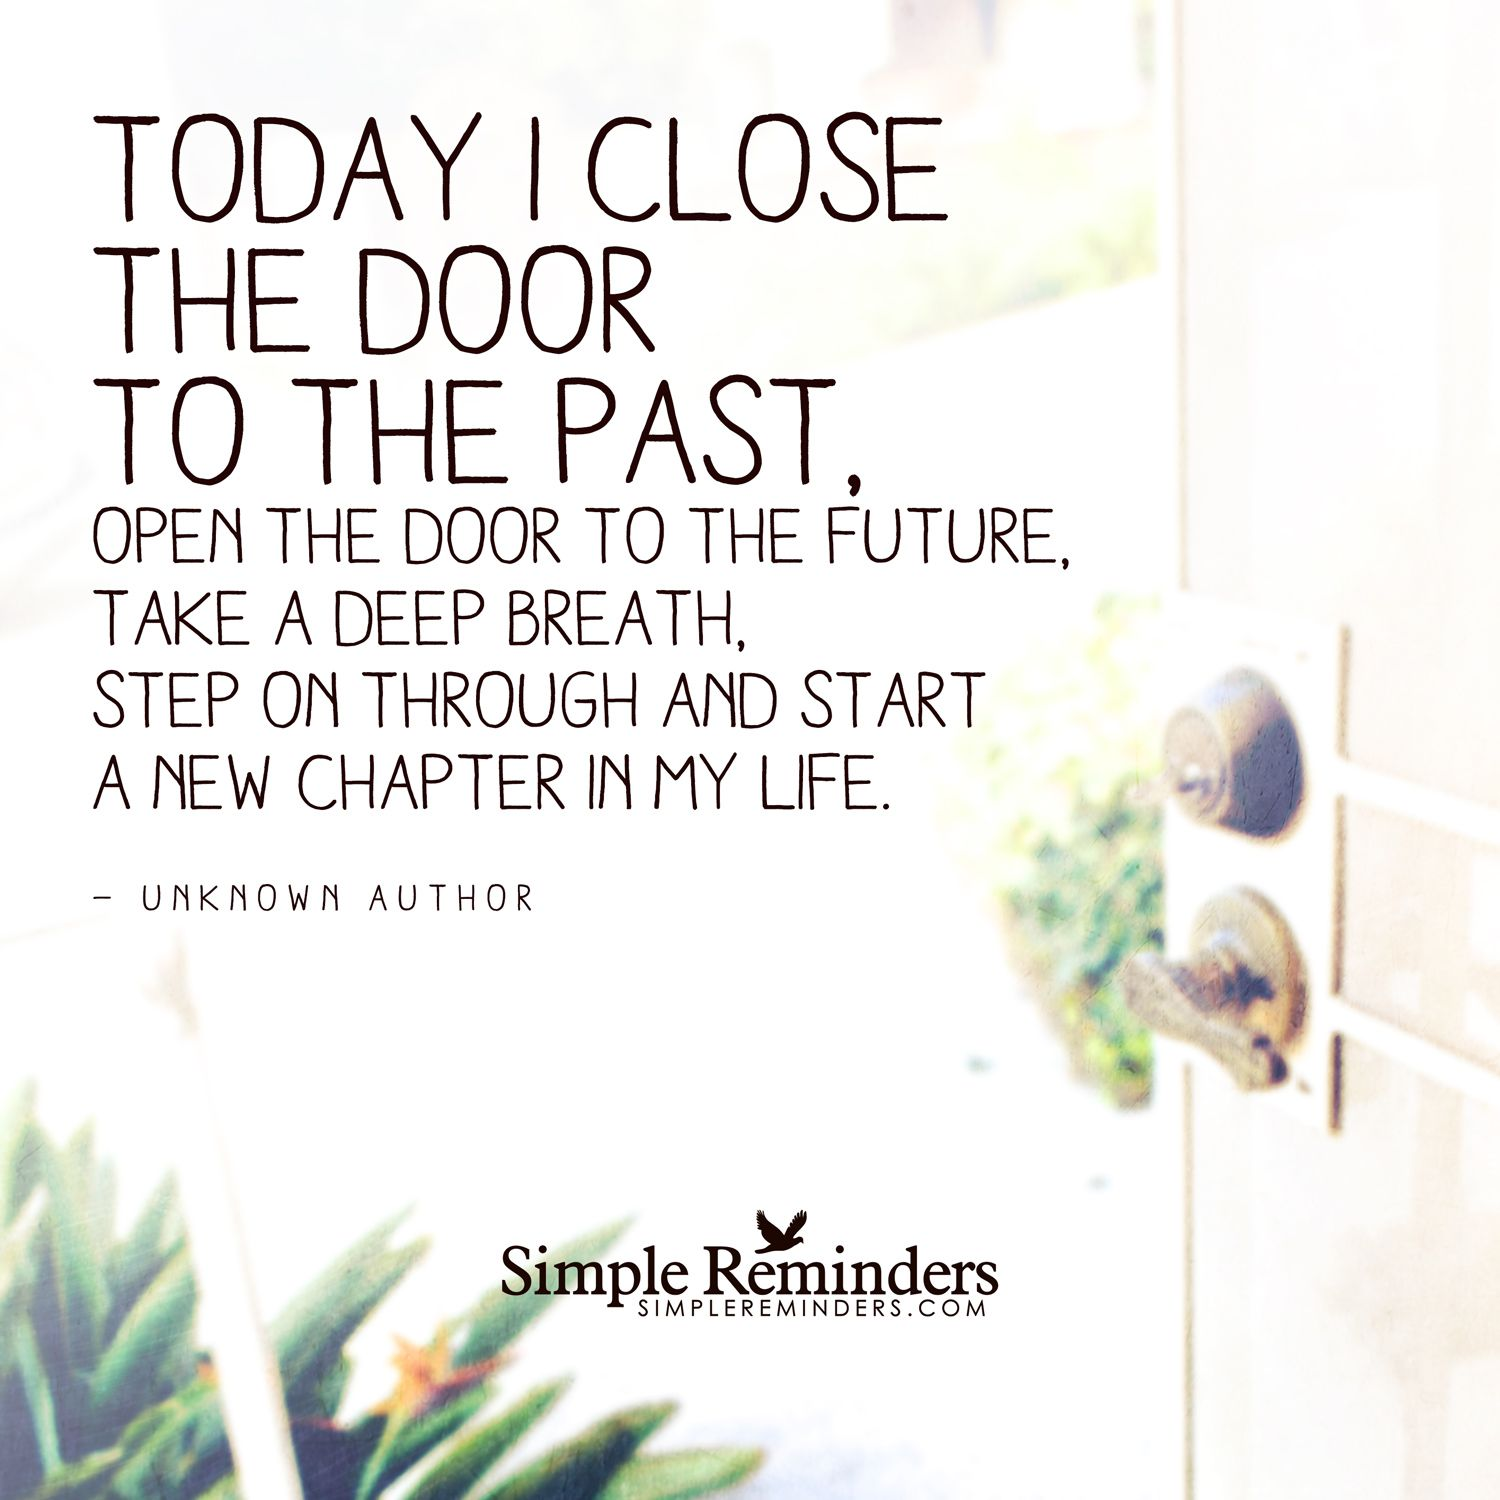 Inspirational Quotes About Starting A New Chapter In Life: Today I Close The Door To The Past, Open The Door To The